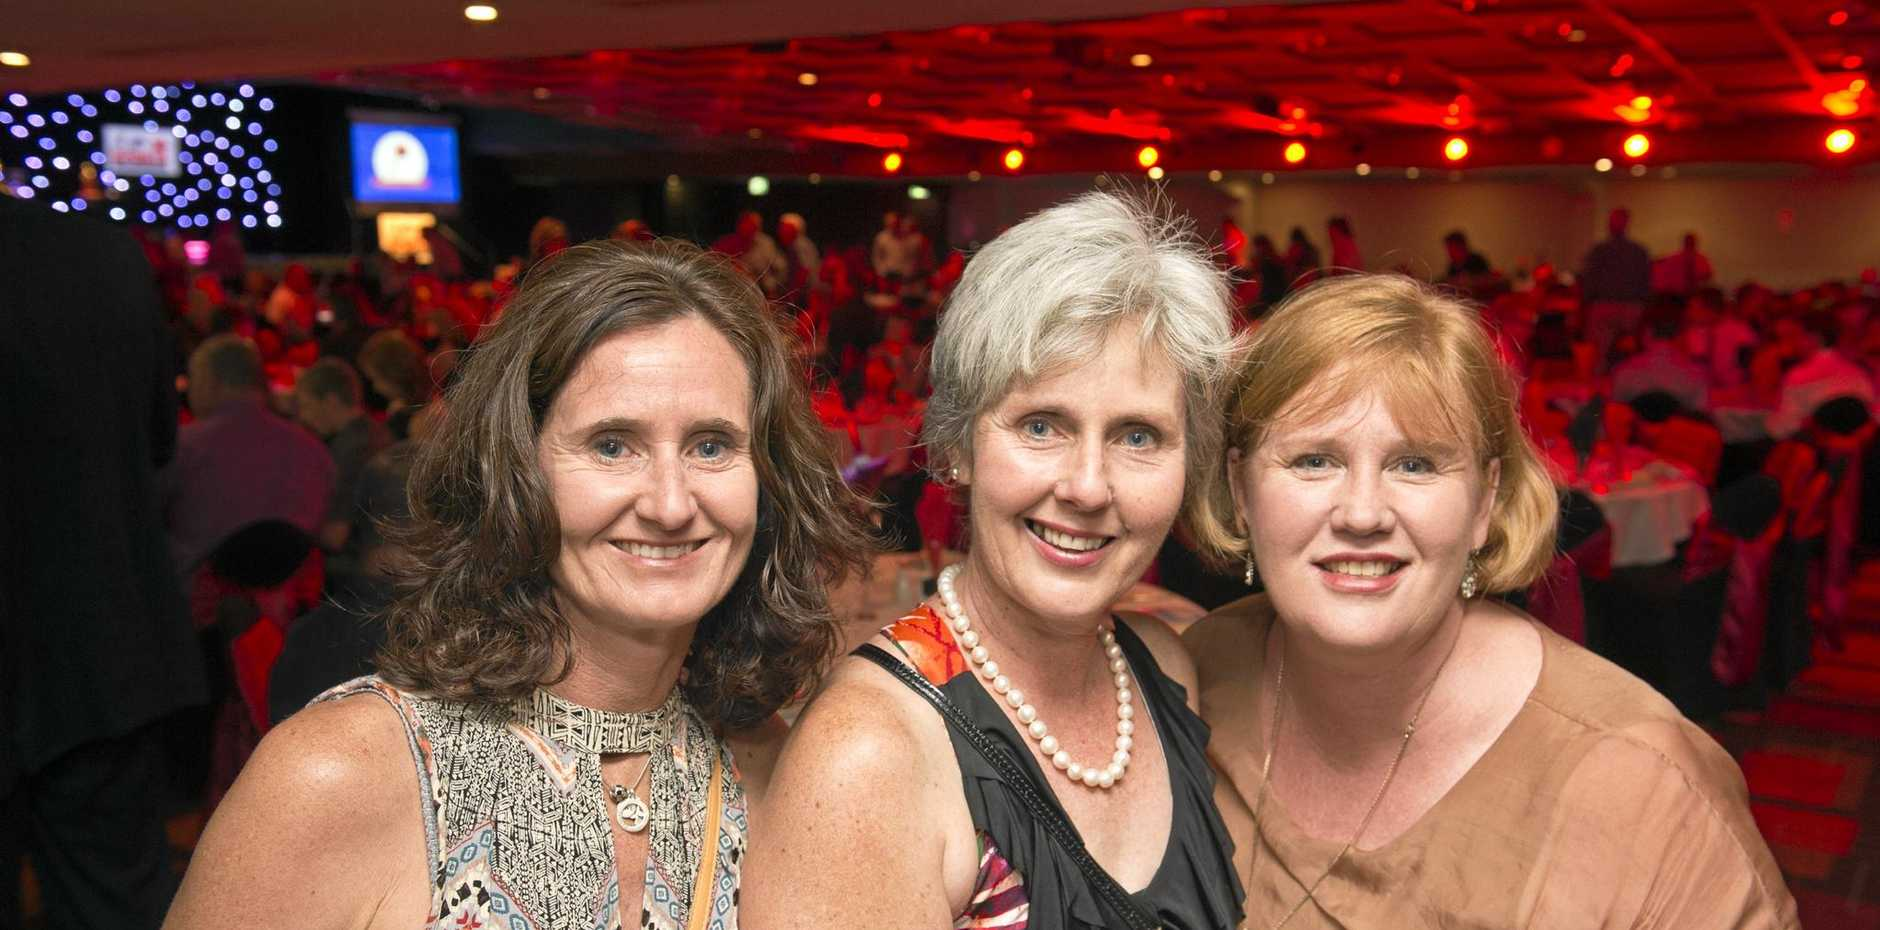 Enjoying a night of celebrations are (from left) Sue Watts, Judy Humphries and Caroline McLean.